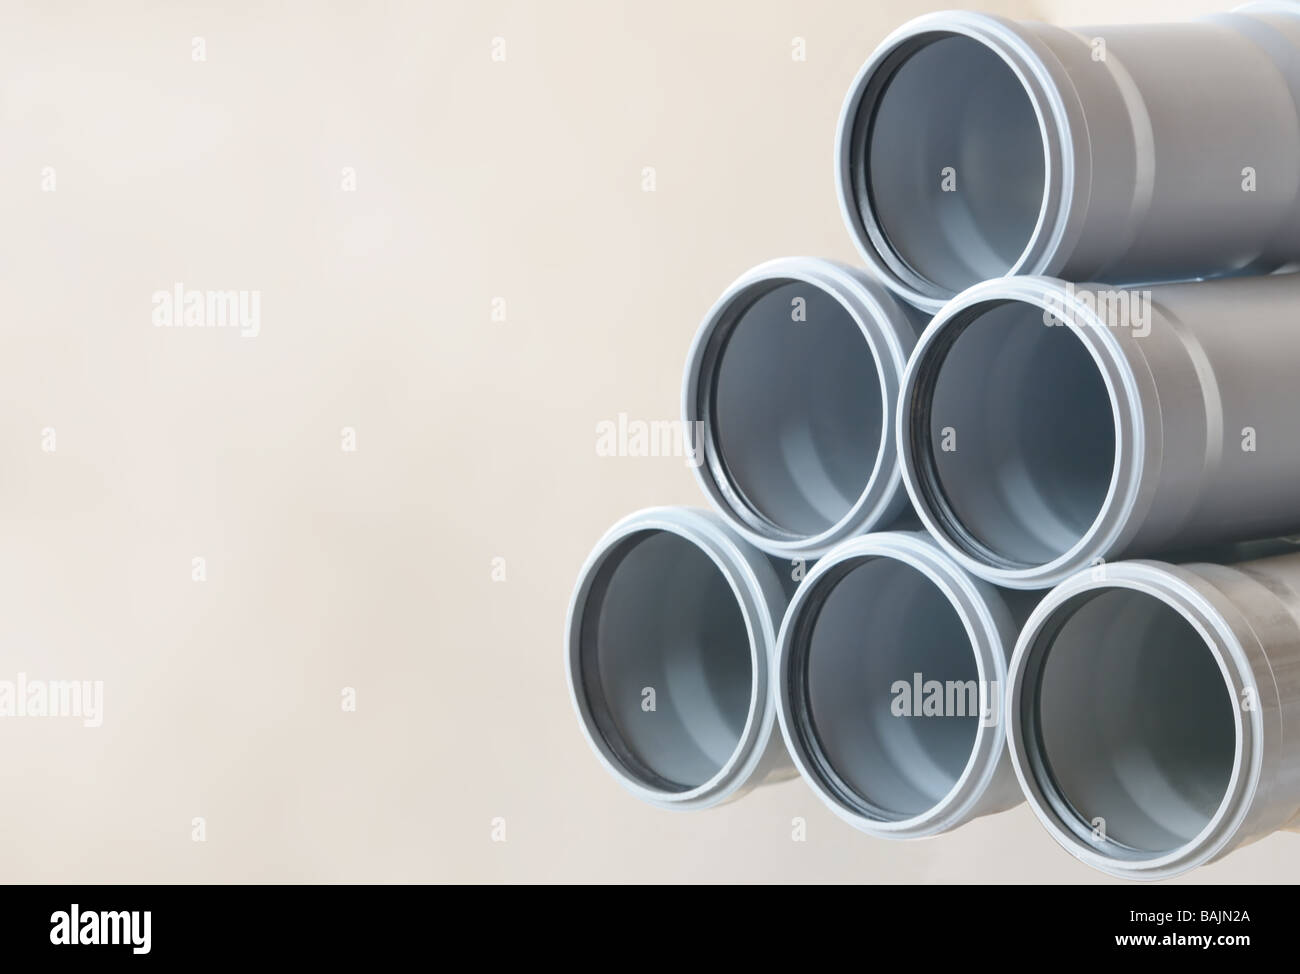 sewer pipes background - Stock Image